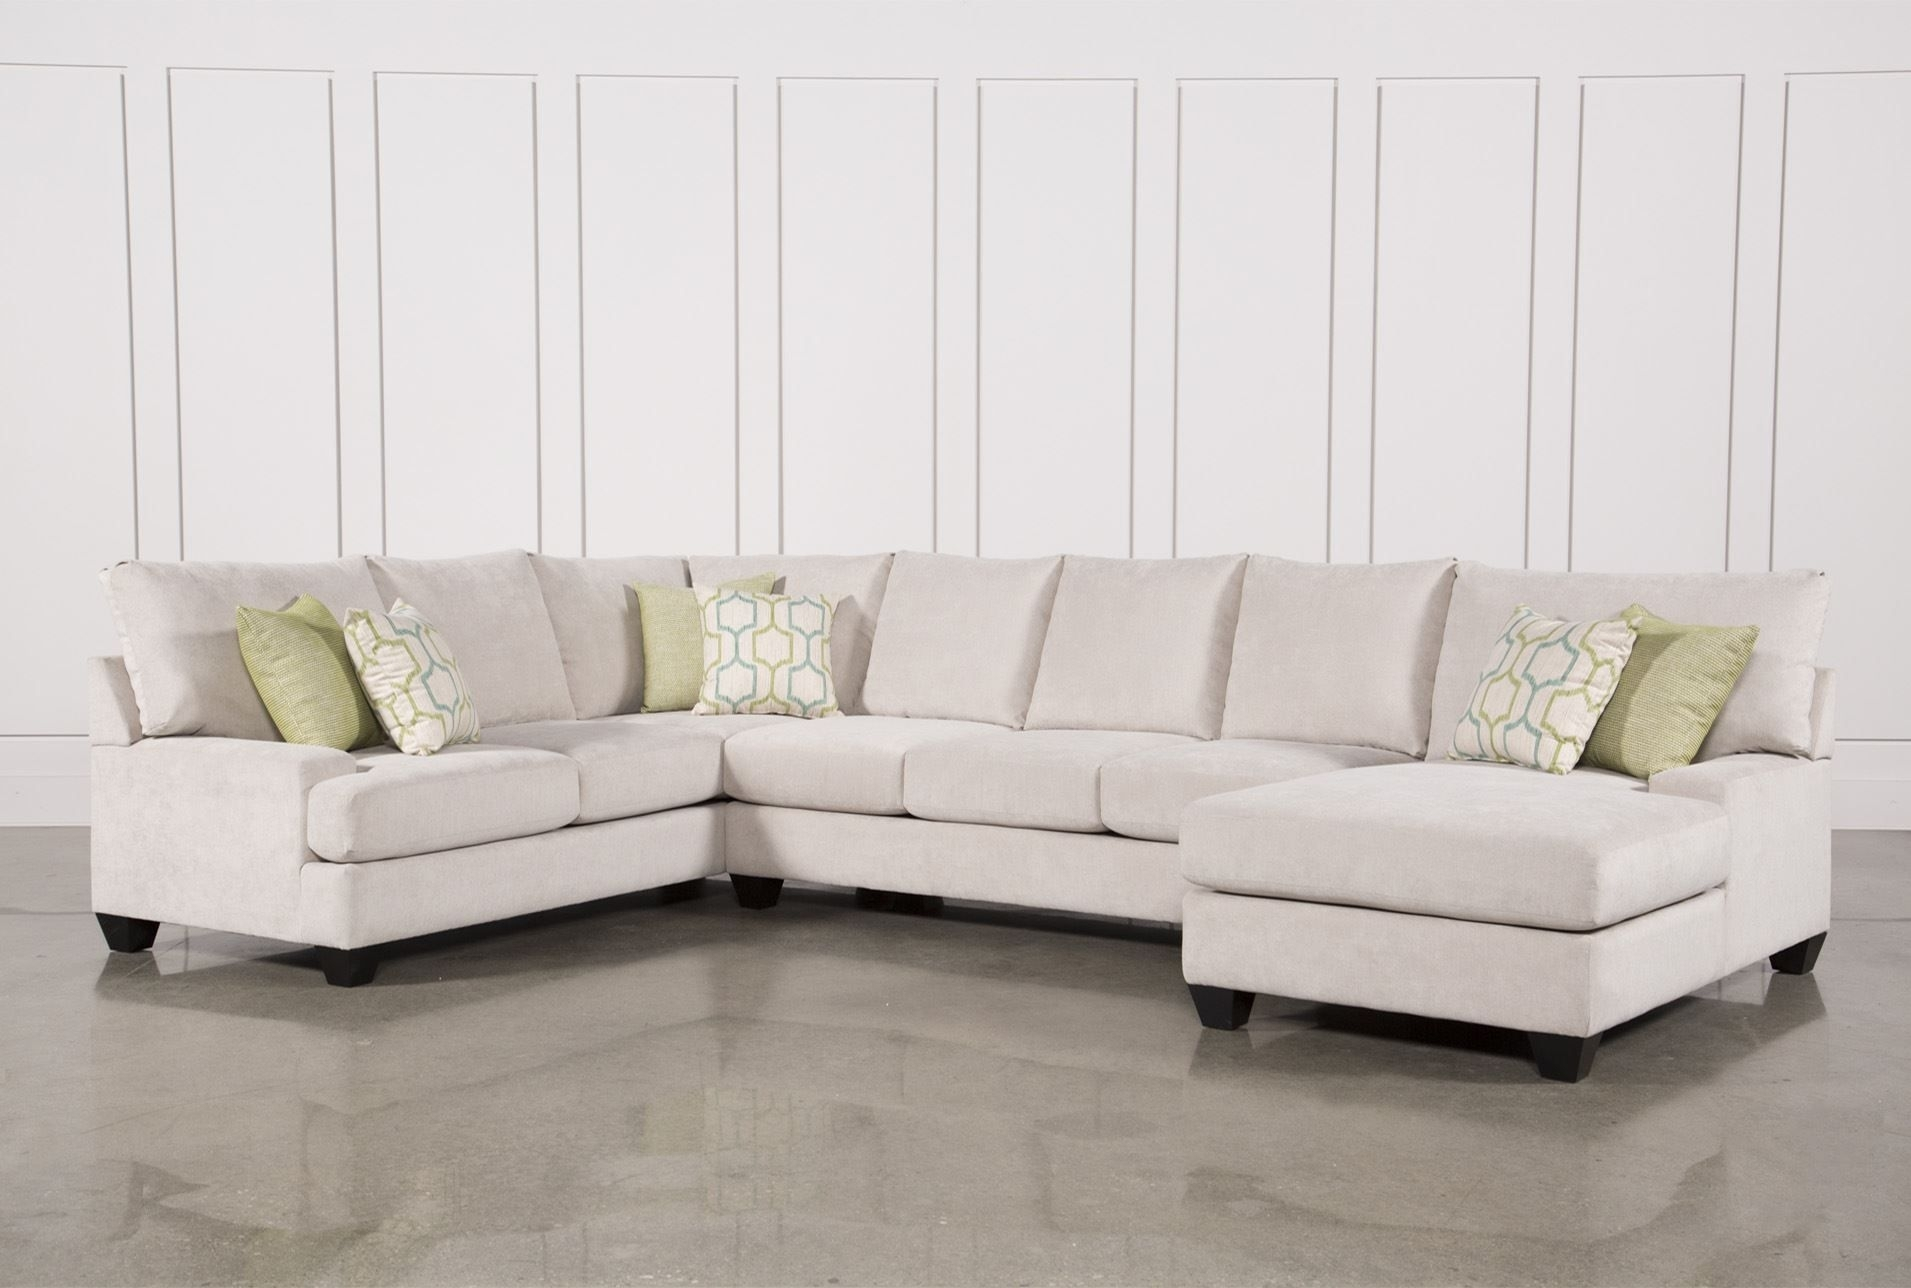 Harper Foam 3 Piece Sectional W/raf Chaise | Family Room | Pinterest regarding Cohen Down 2 Piece Sectionals (Image 11 of 30)